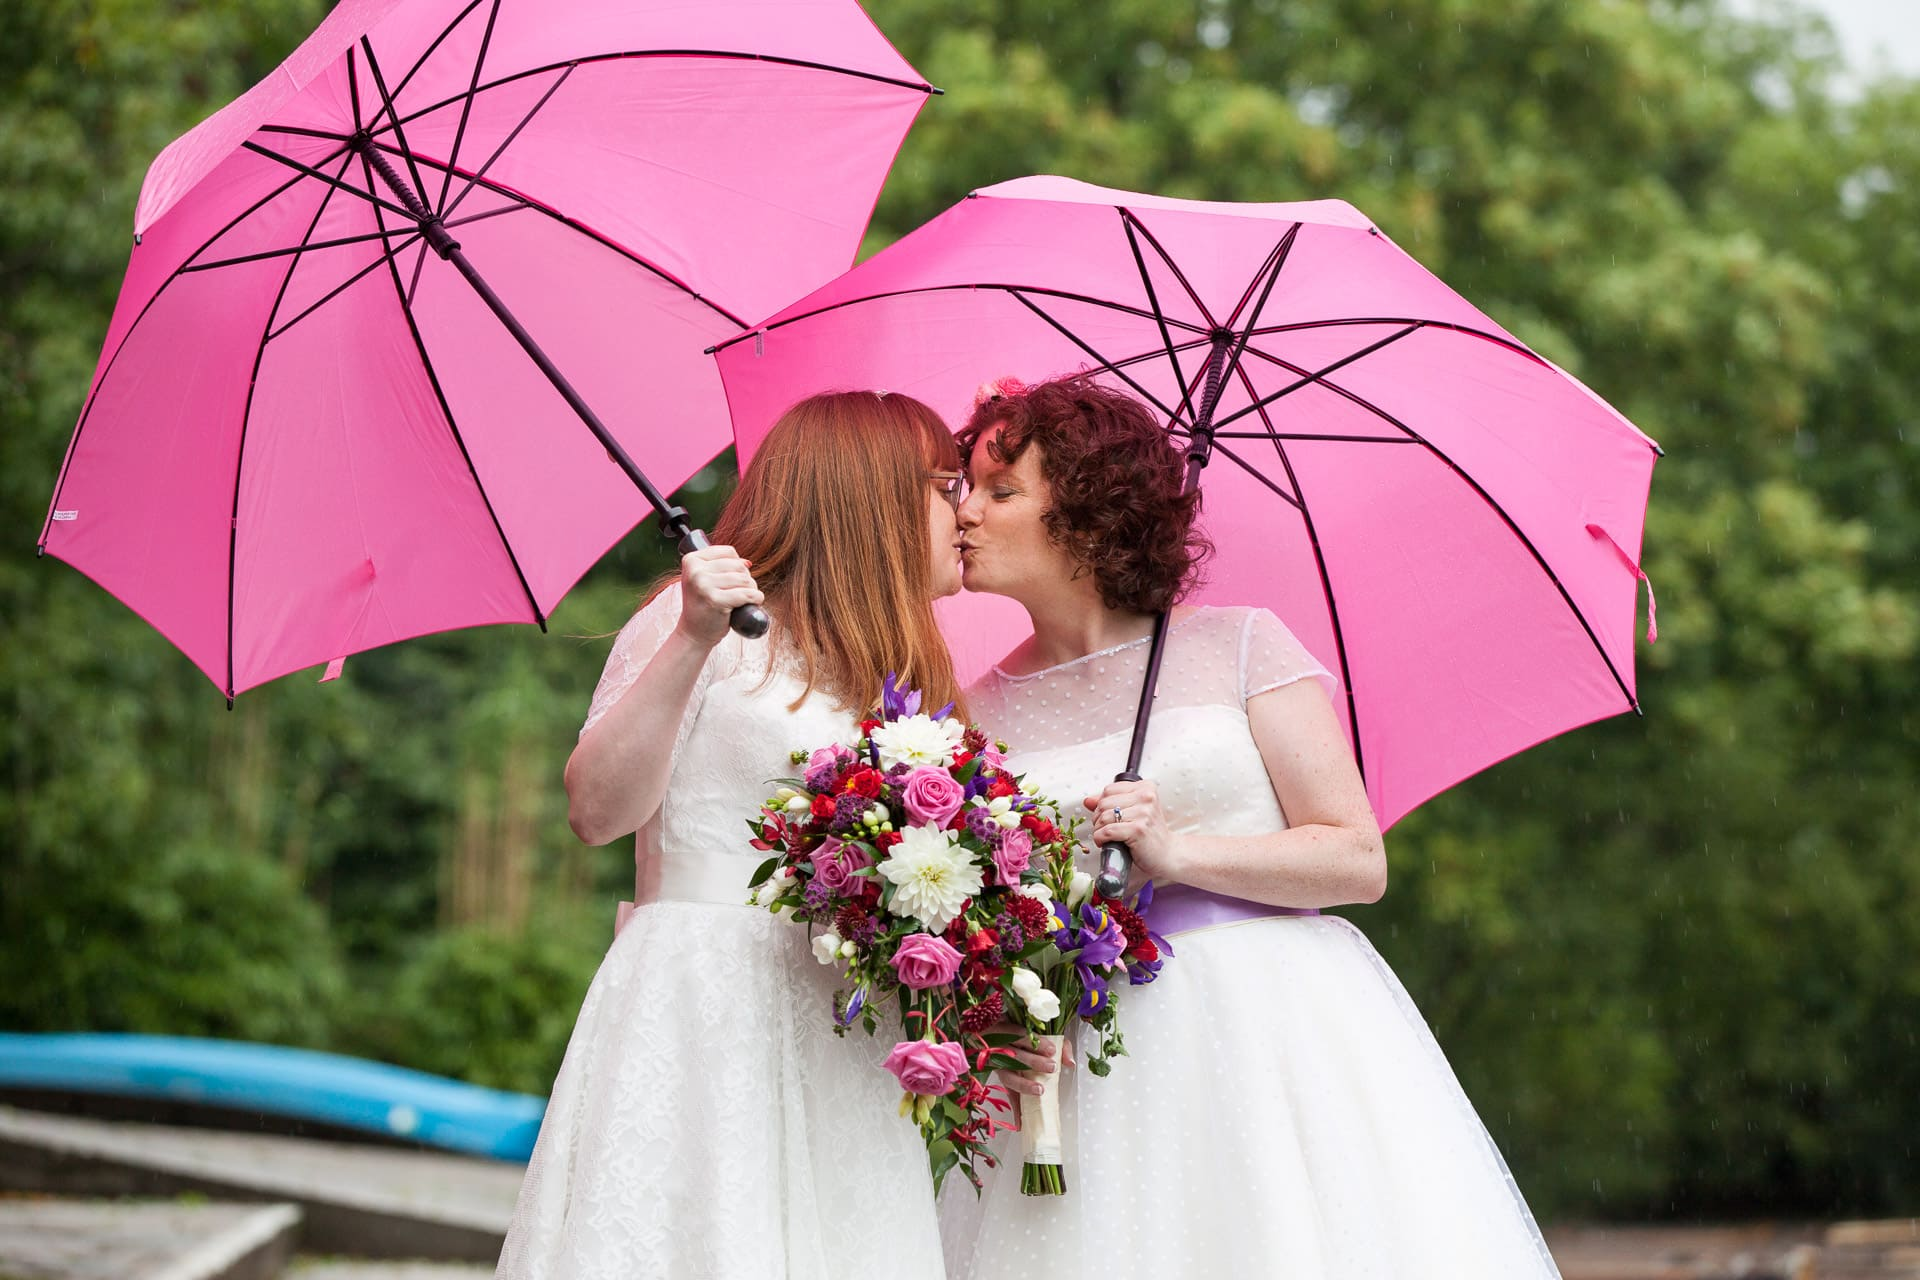 Lesbian couple in wedding dresses kissing under pink umbrellas